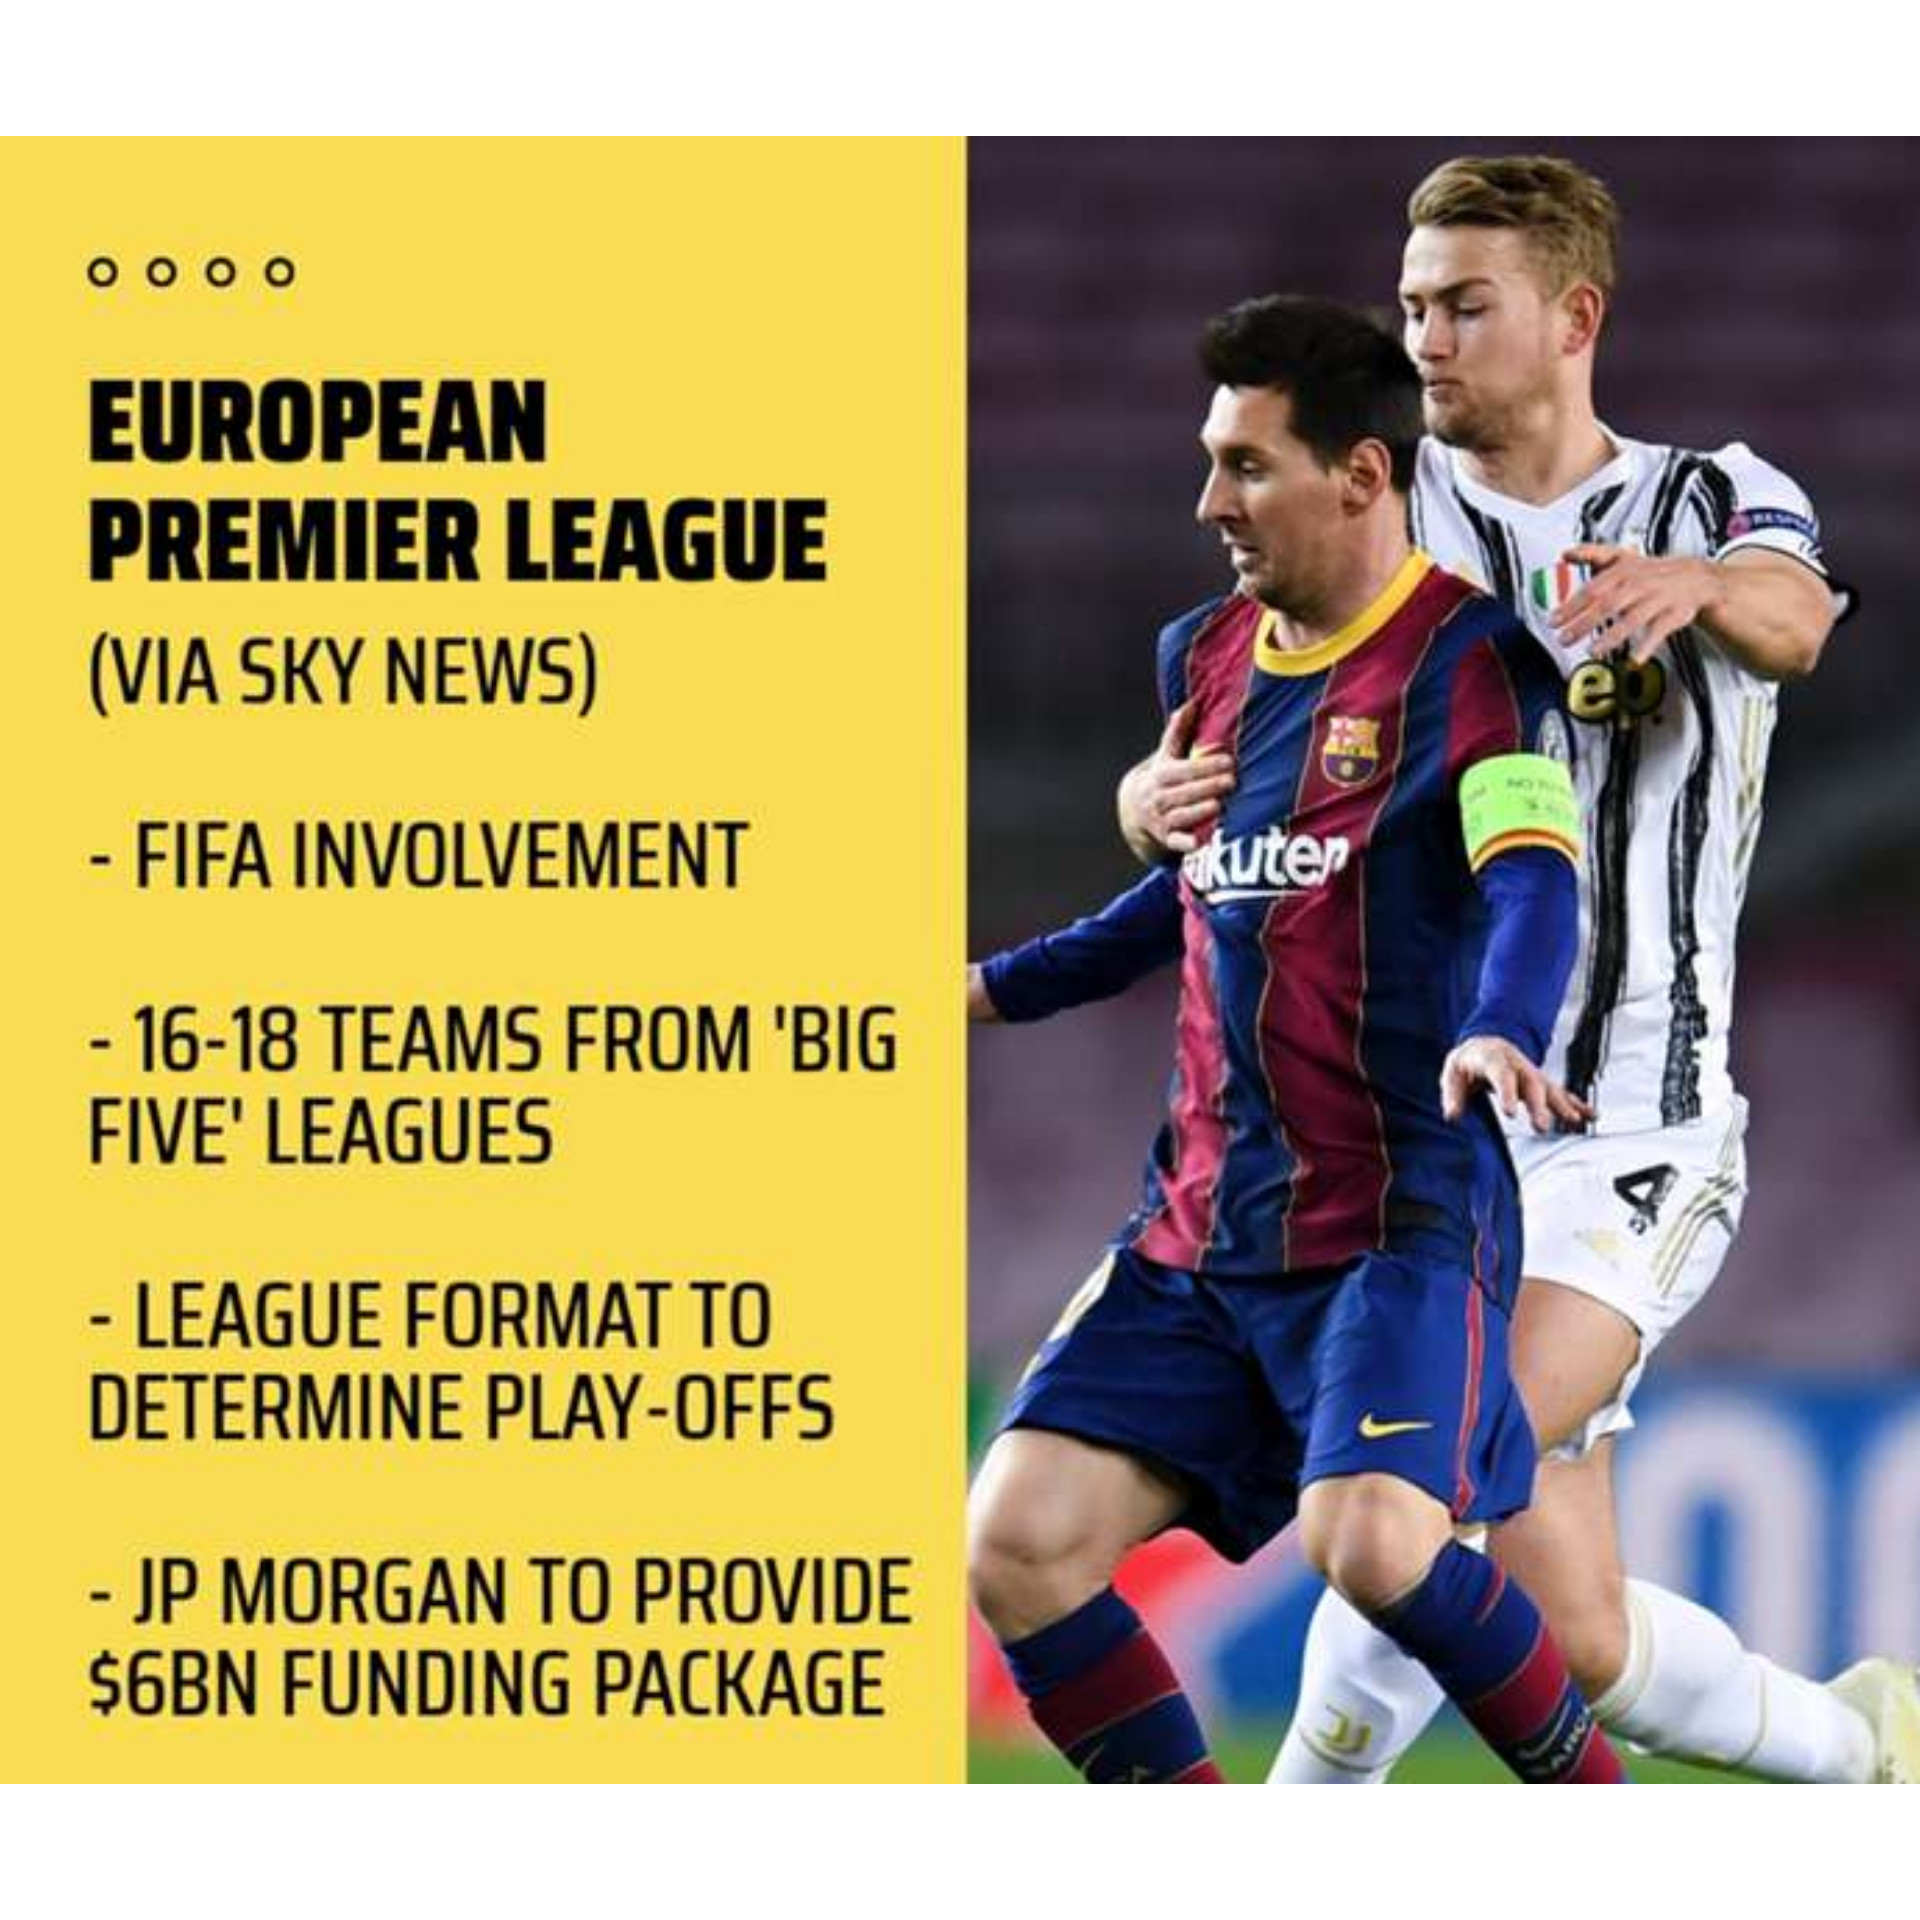 UEFA and Premier League issue scathing statements after 12 top clubs announce plans to breakaway and set up their own European Super League